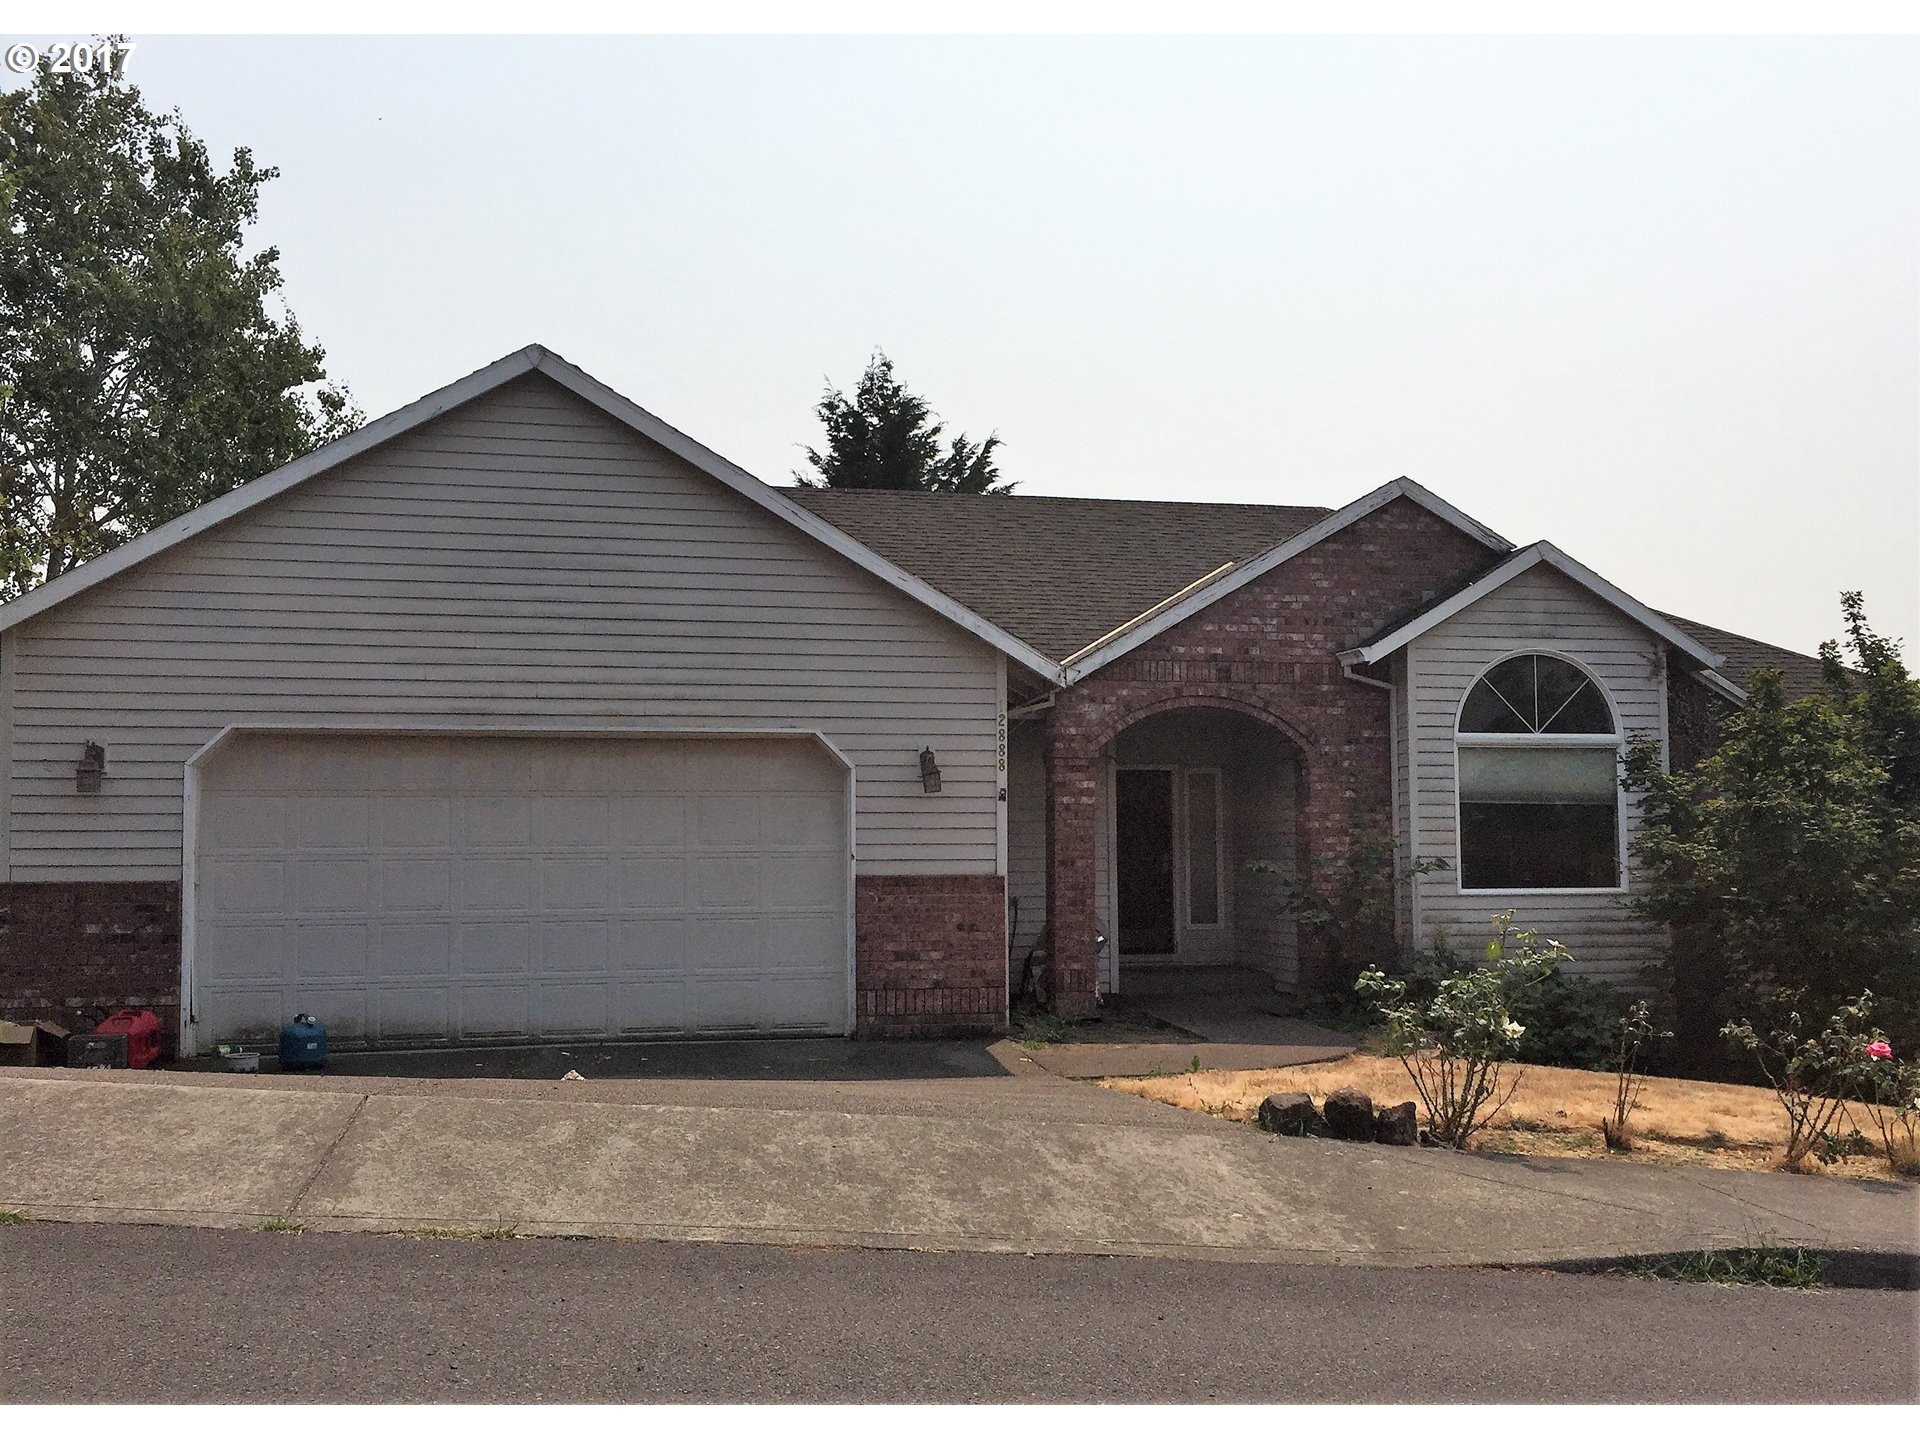 12888 SE 136TH DR, Happy Valley, OR 97086